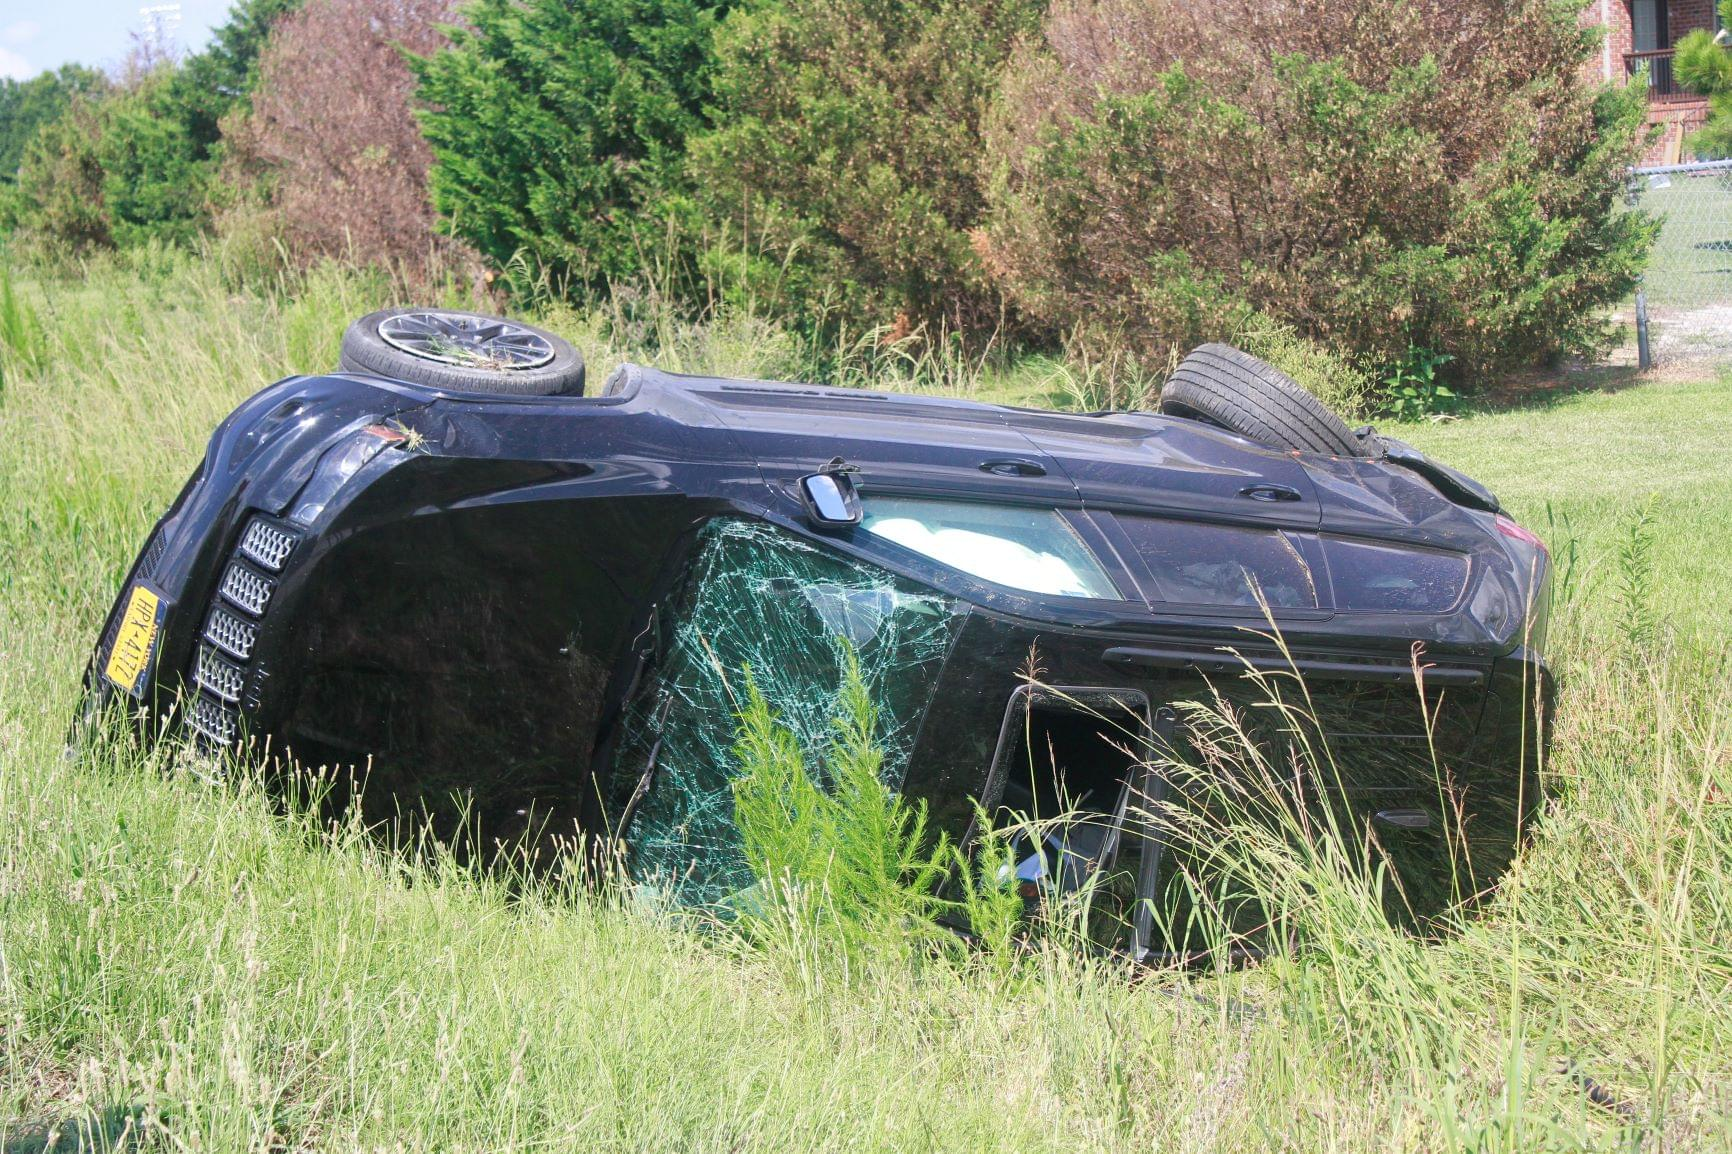 Vehicles Collide In Mount Olive (PHOTOS)